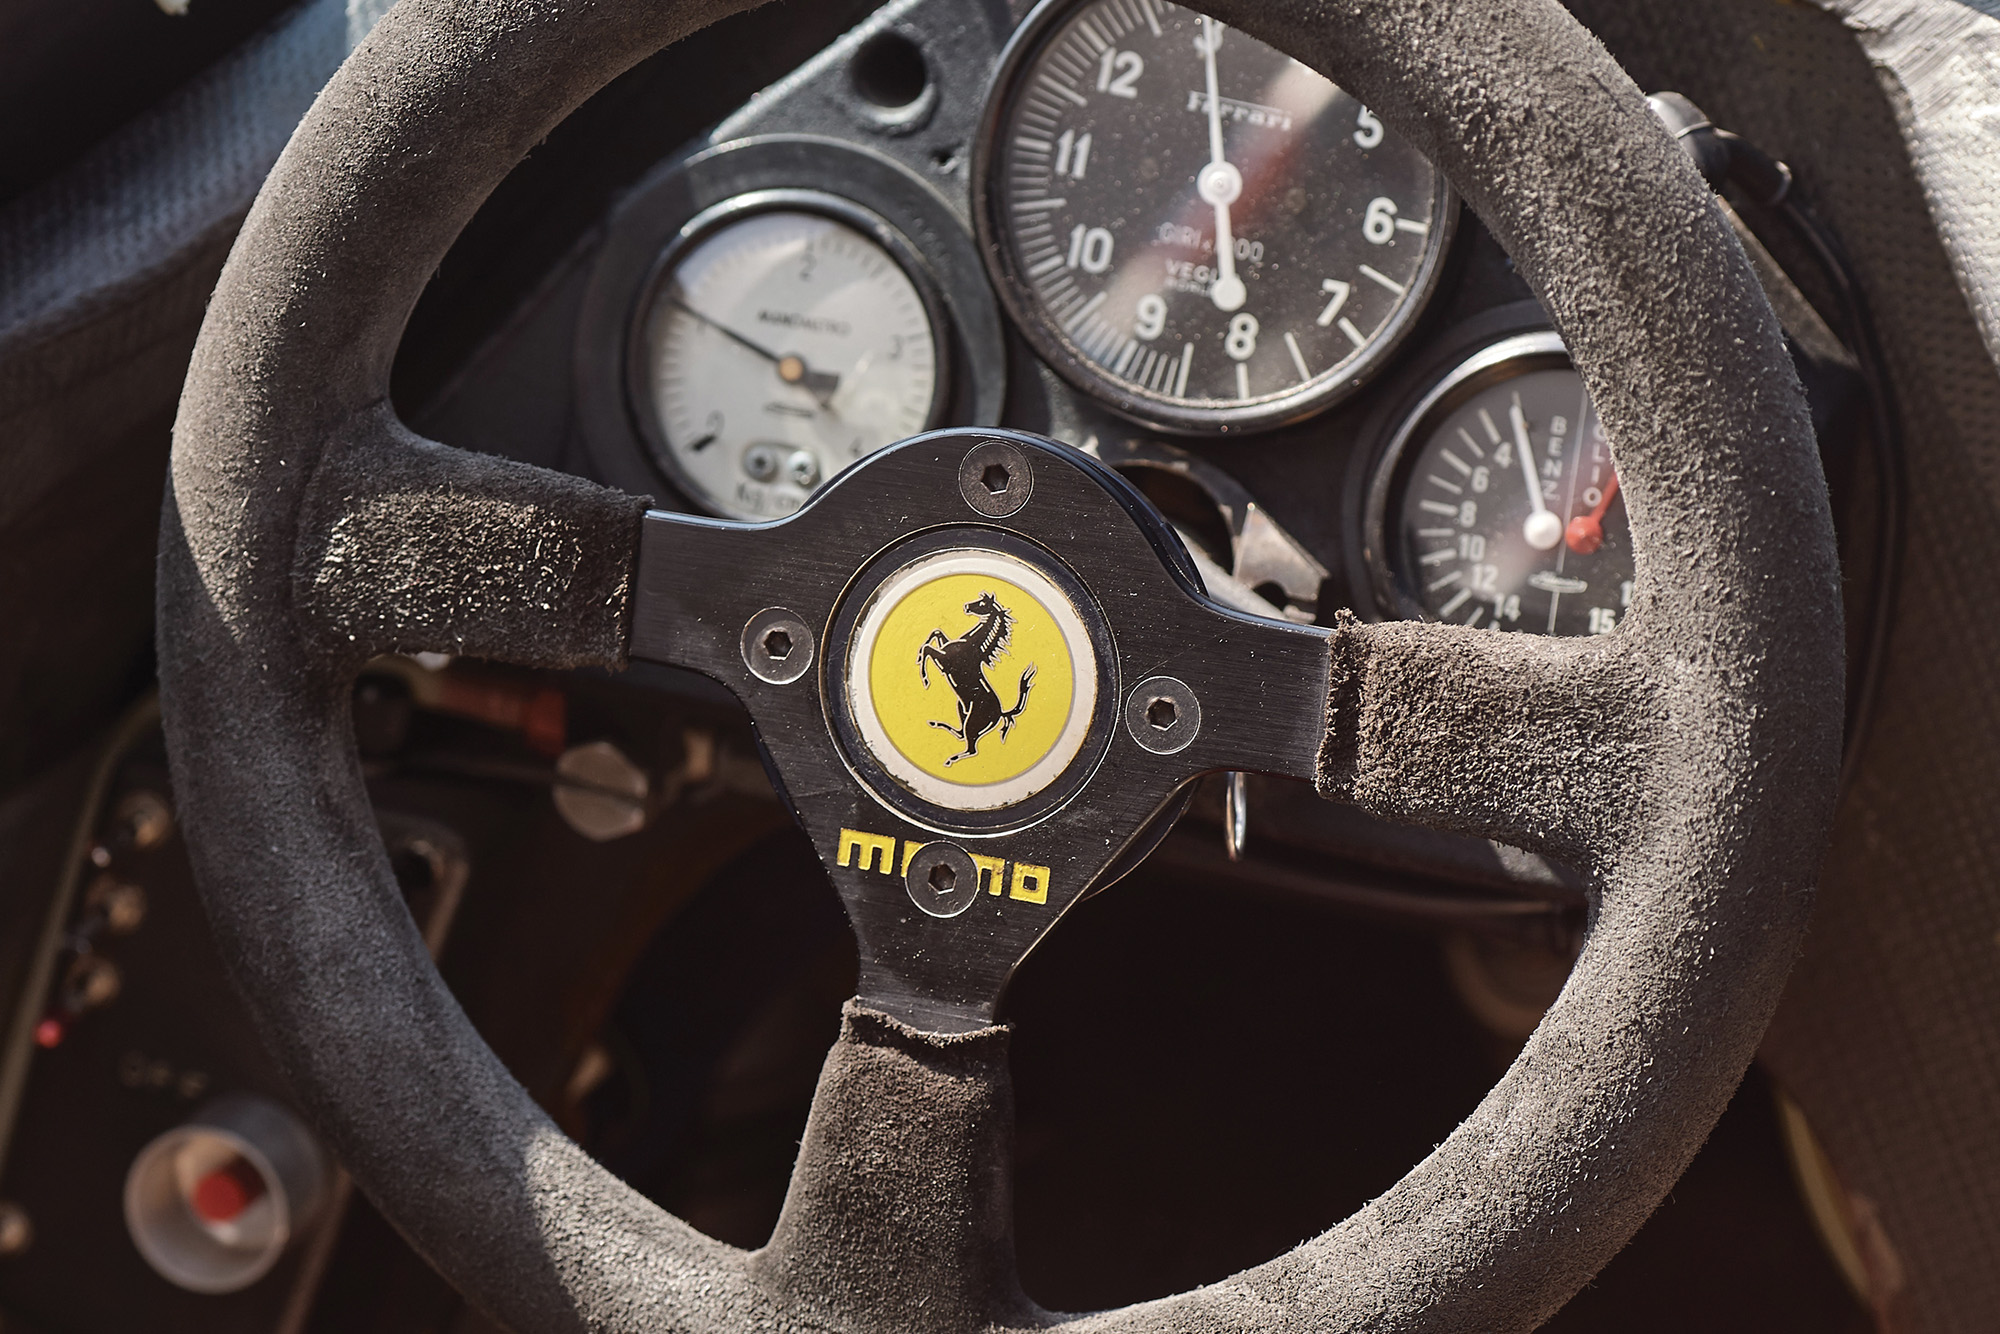 Cockpit of the 1982 F1 Ferrari 126 C2